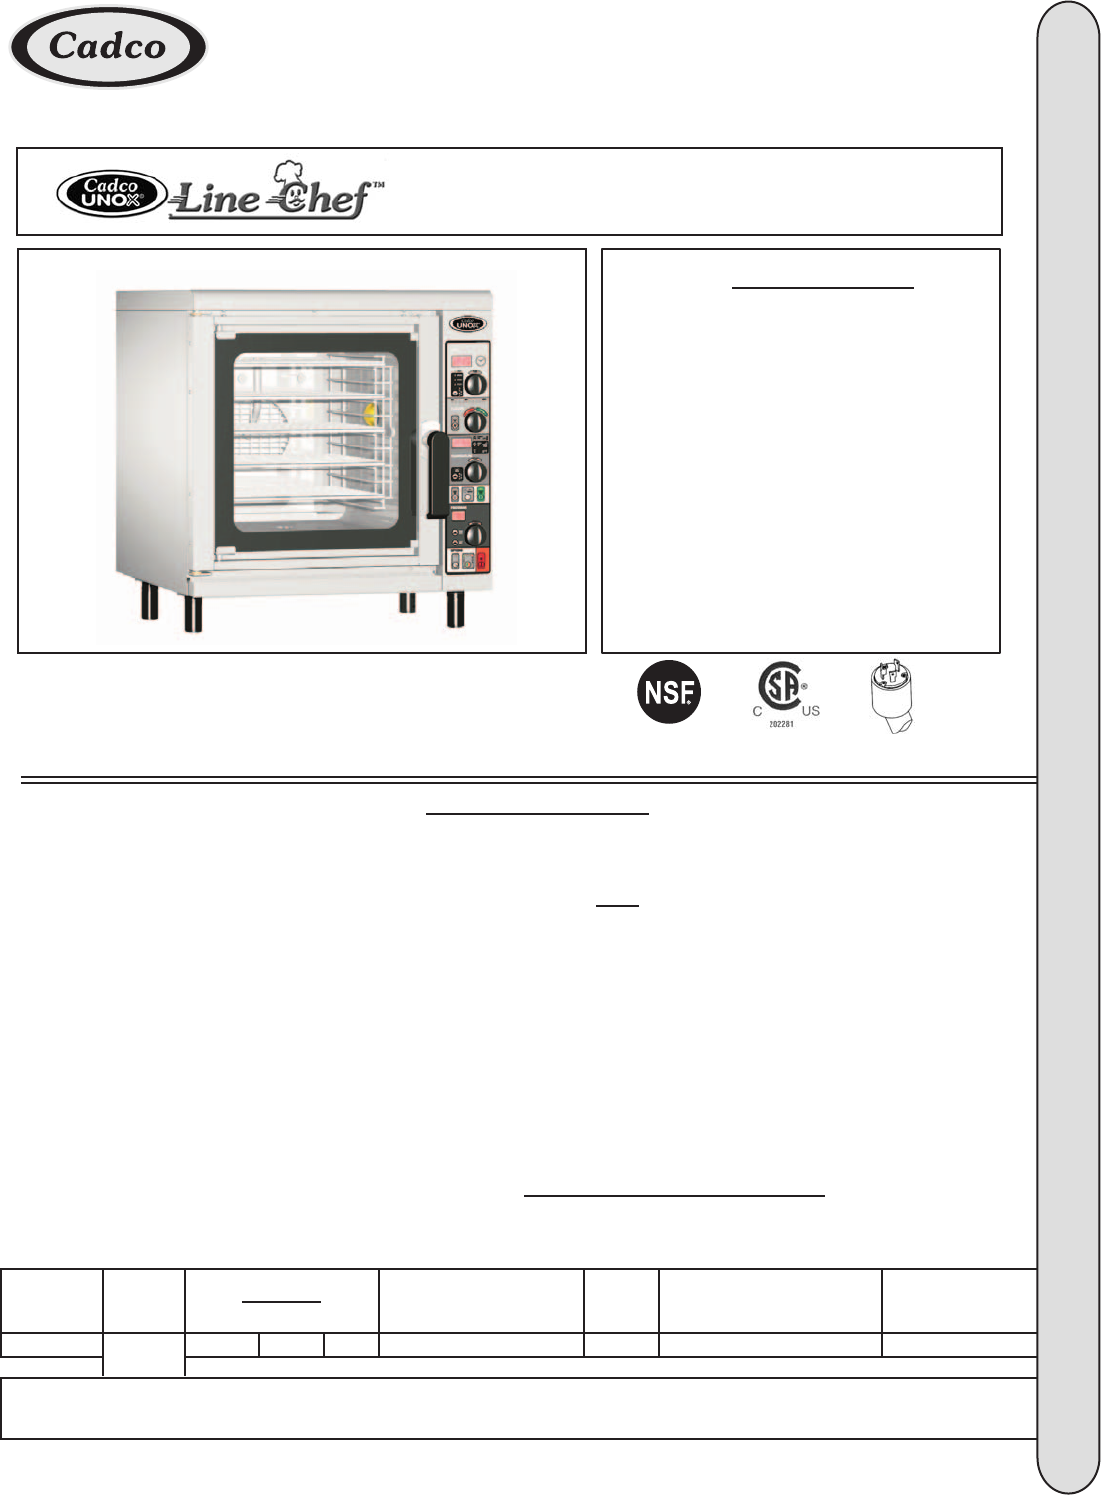 Cadco CAPO-203 Microwave Oven User Manual